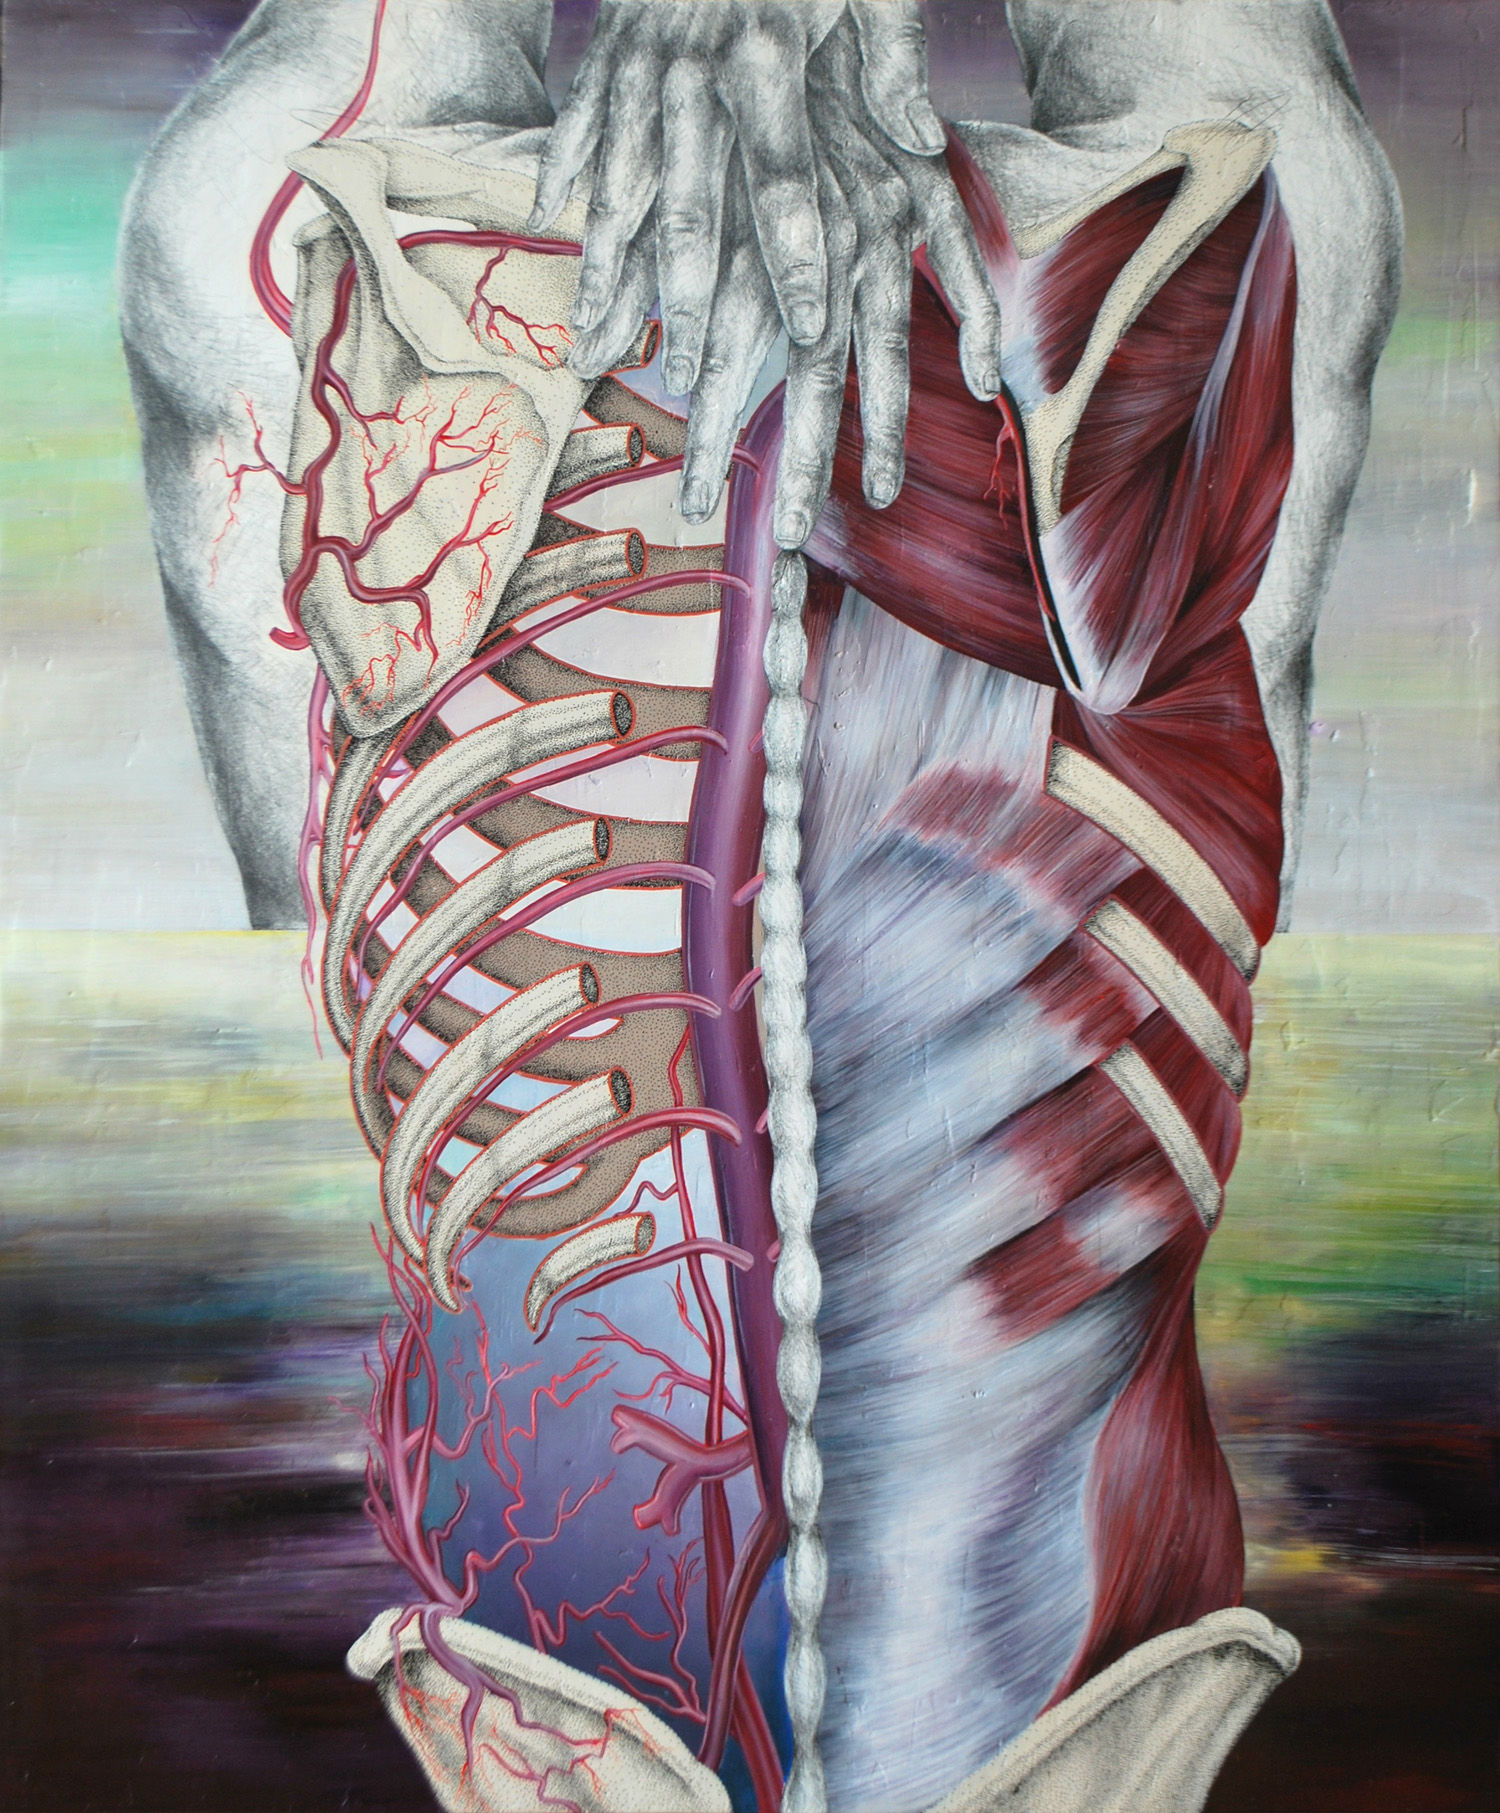 Giselle Vitali illustration body human medical